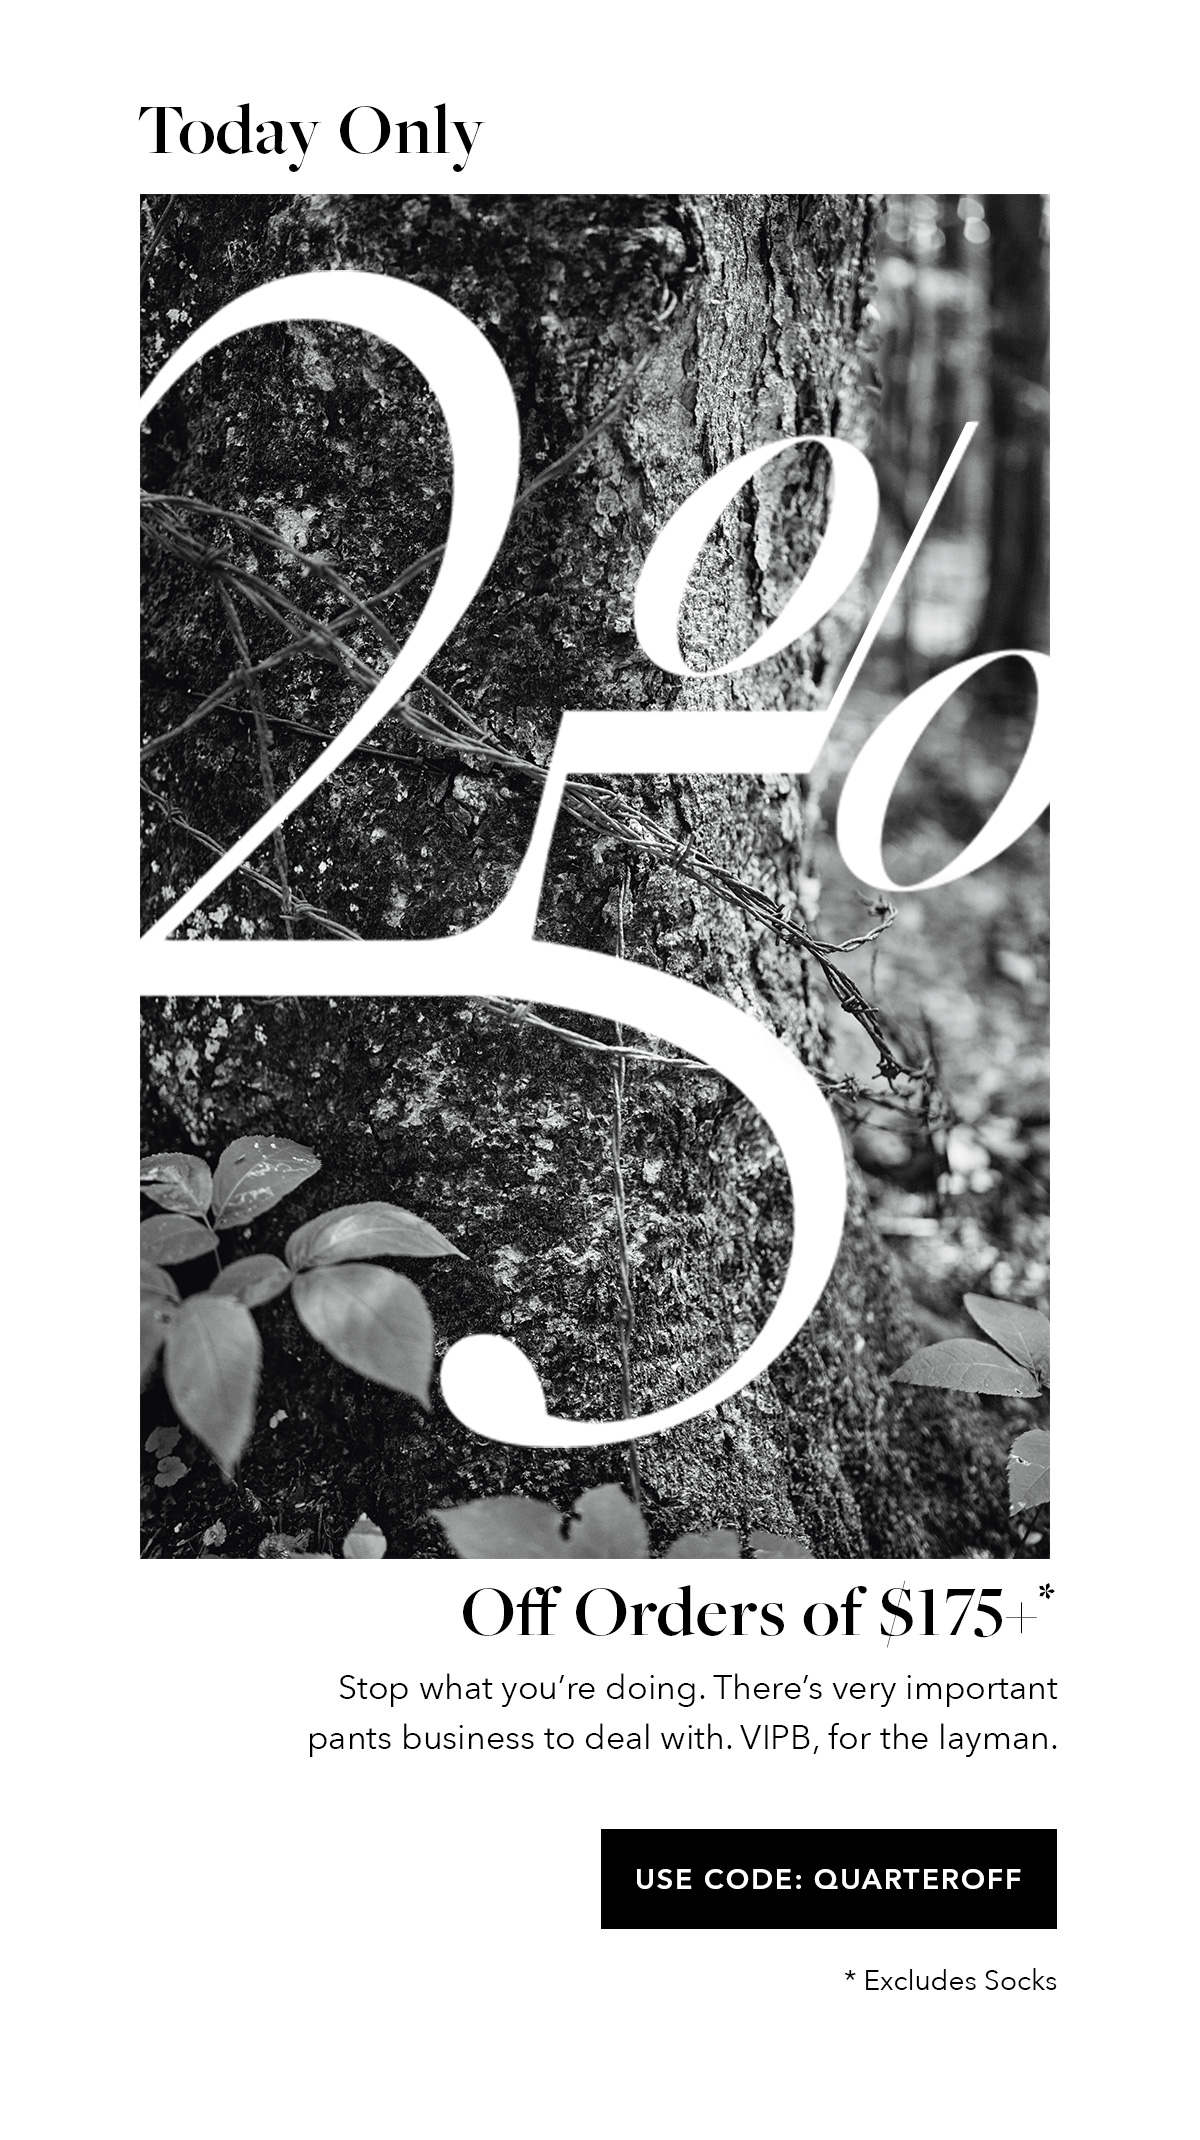 Today Only: 25% Off Orders of $175+ // Stop what youre doing. Theres very important pants business to deal with. VIPB, for the layman. // USE CODE QUARTEROFF